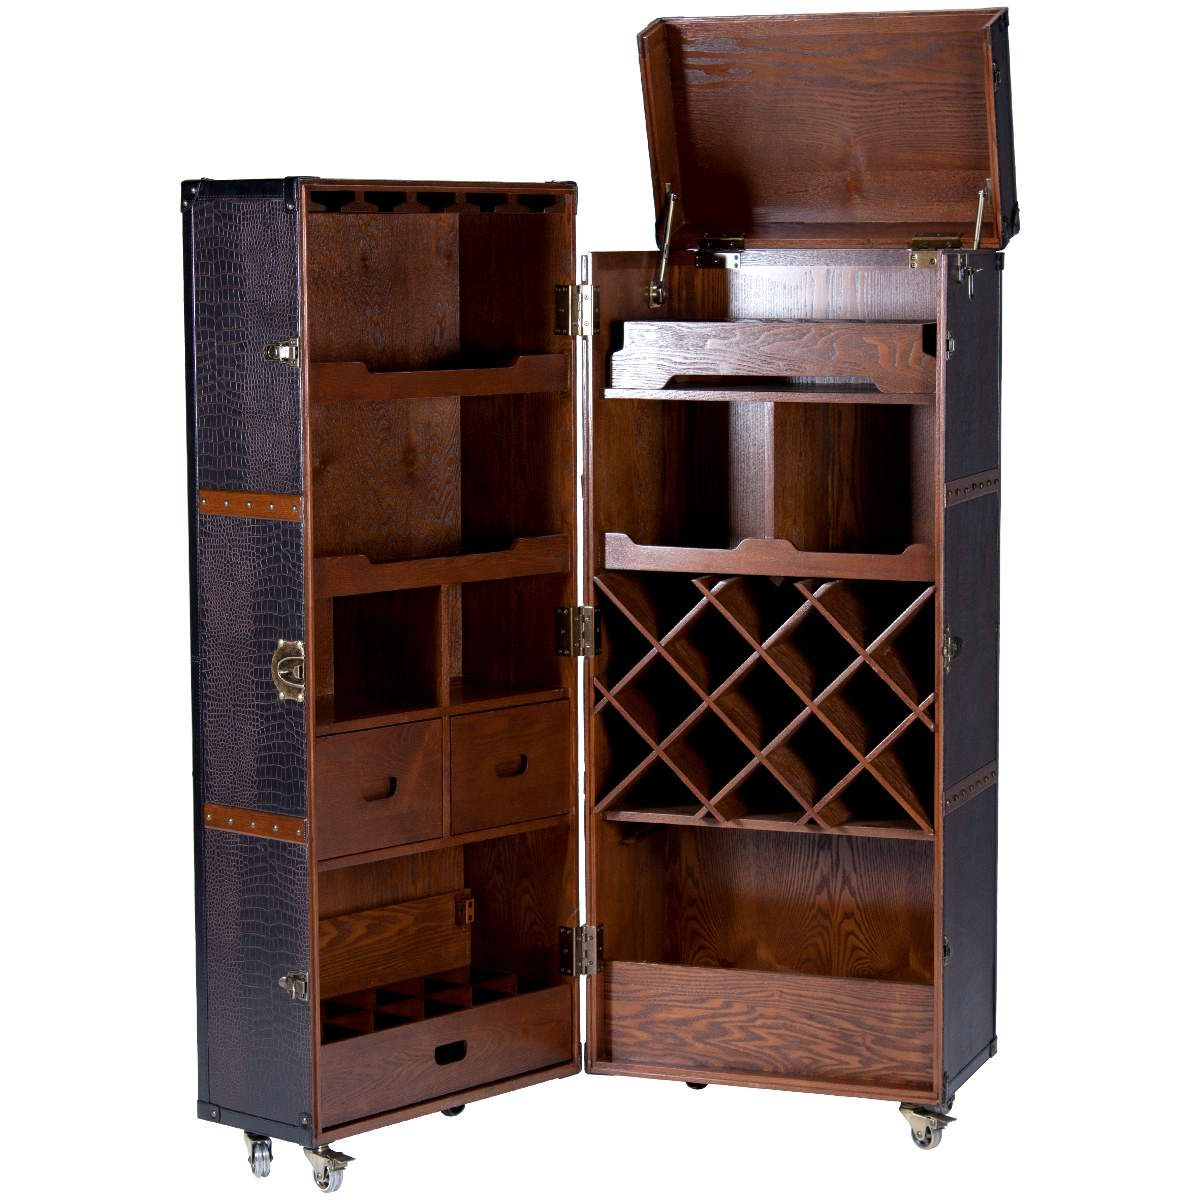 trunk style mini bar retro drinks cabinet inspired by ernest hemingway steamer trunk. Black Bedroom Furniture Sets. Home Design Ideas